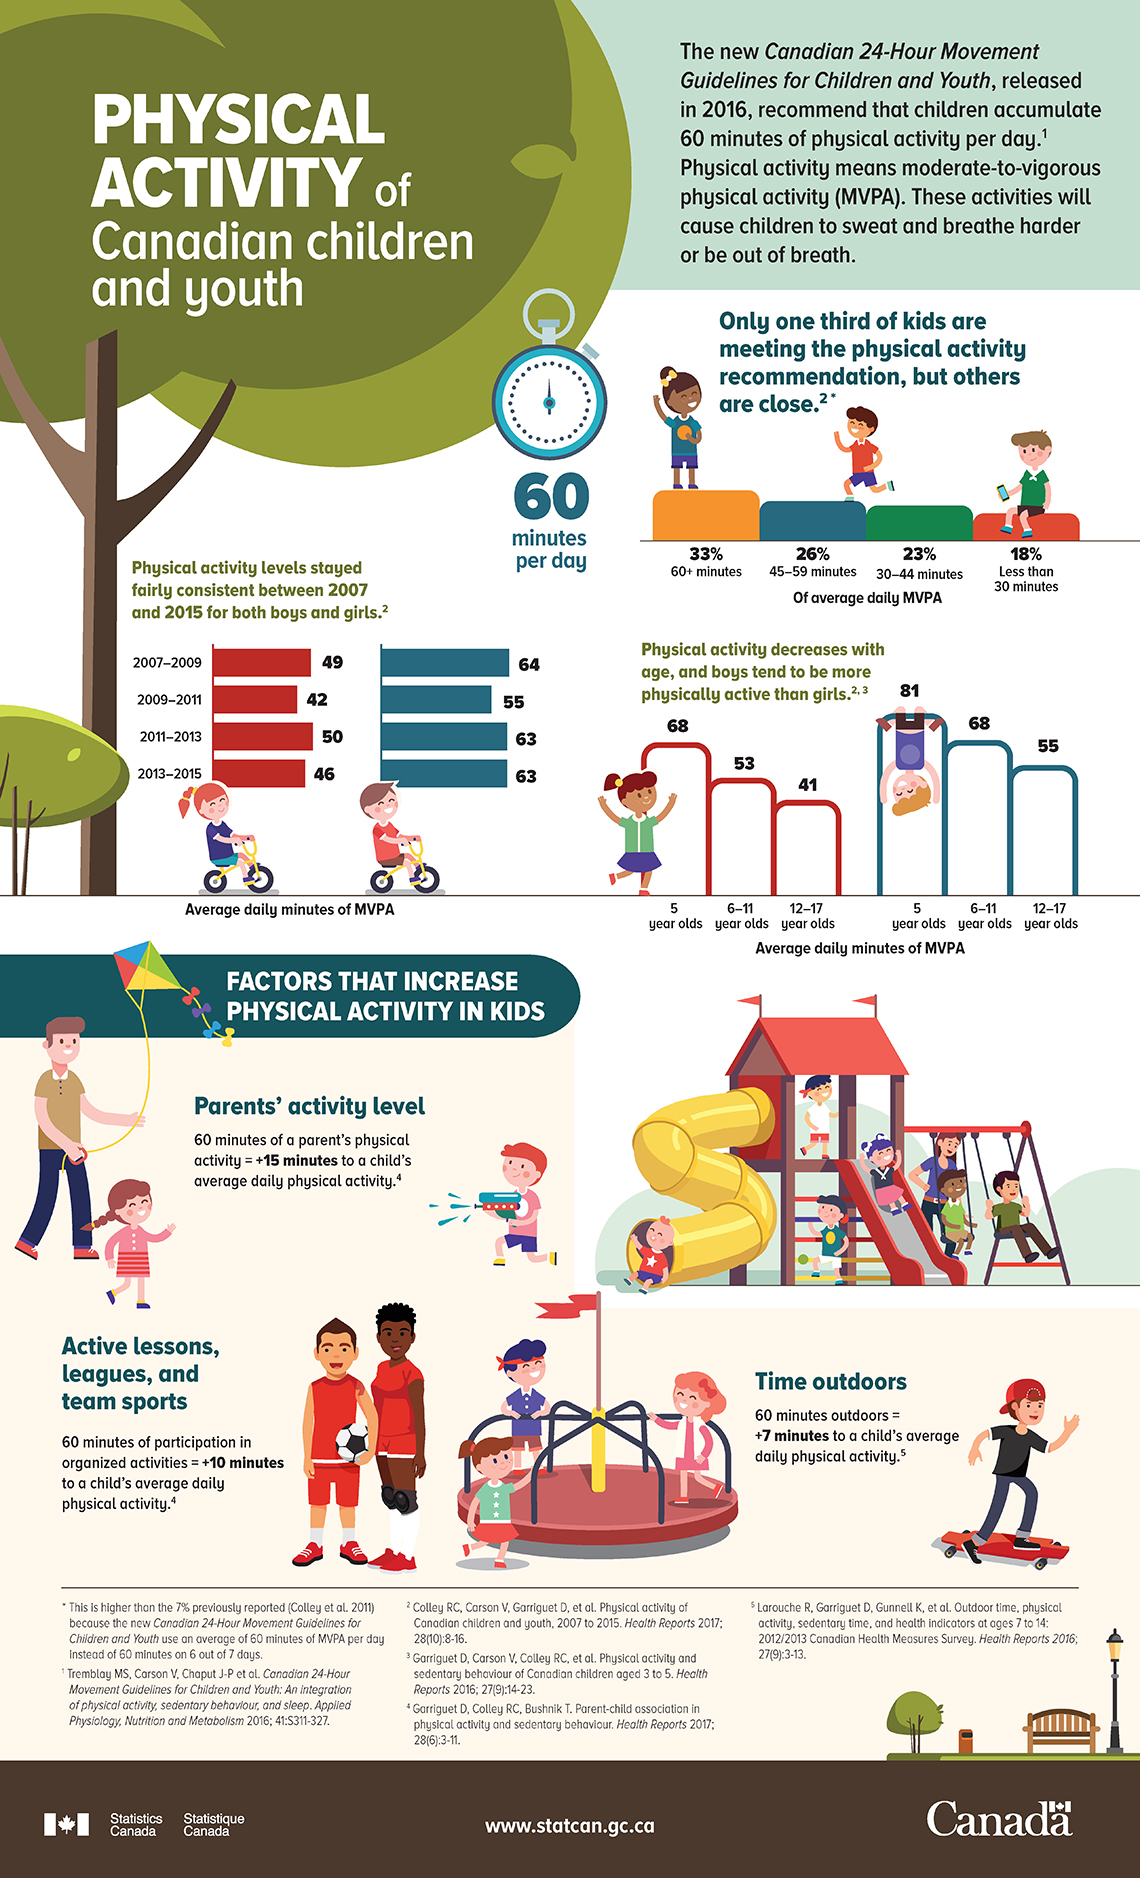 Physical Activity Of Canadian Children And Youth